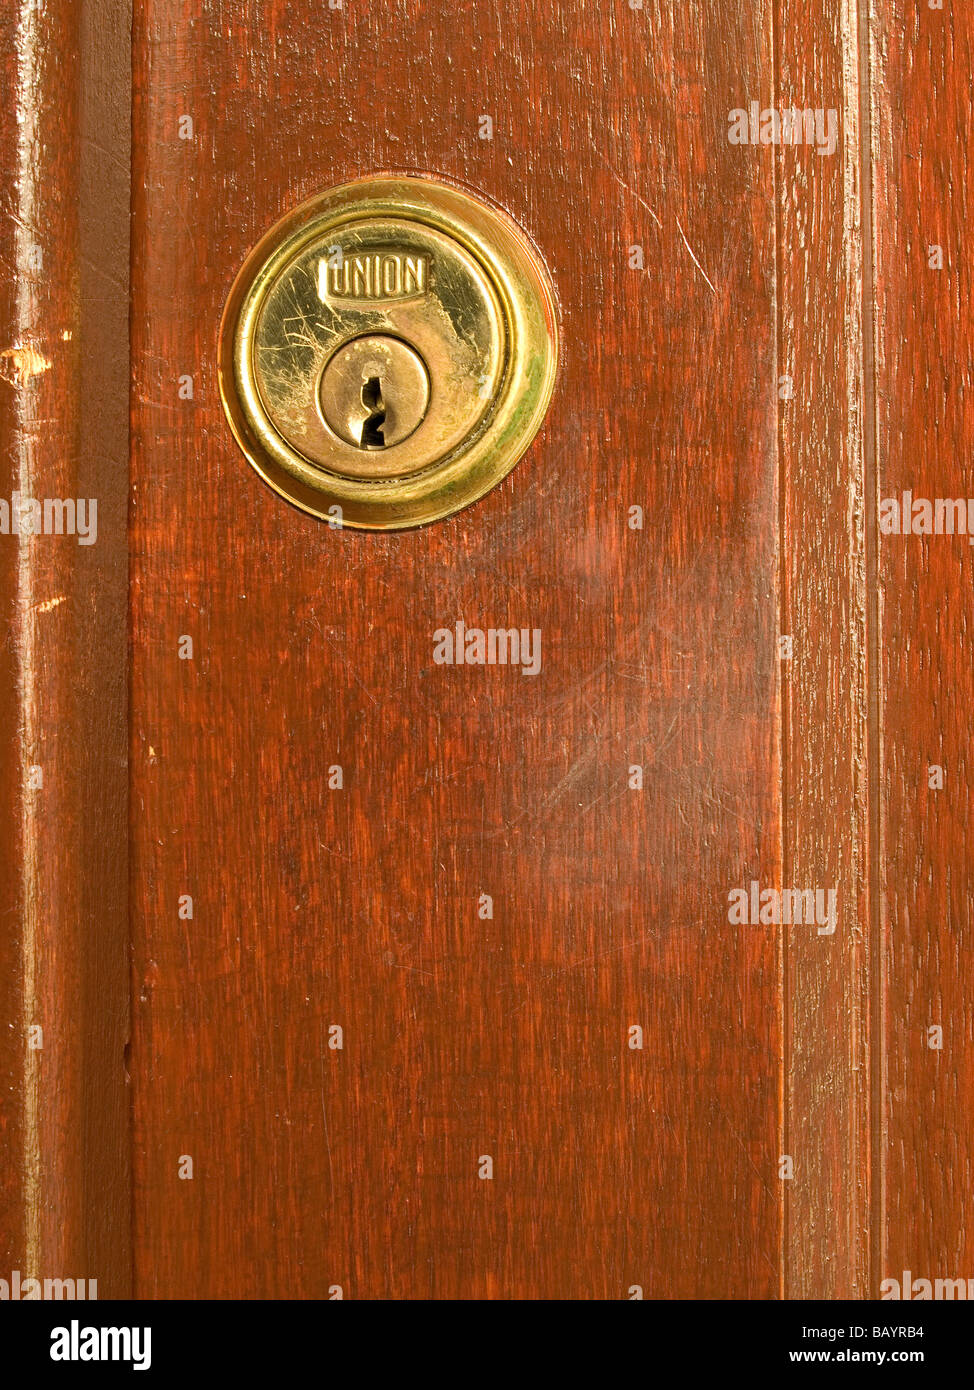 Union brand Yale type lock in a wooden door scratched and worn with